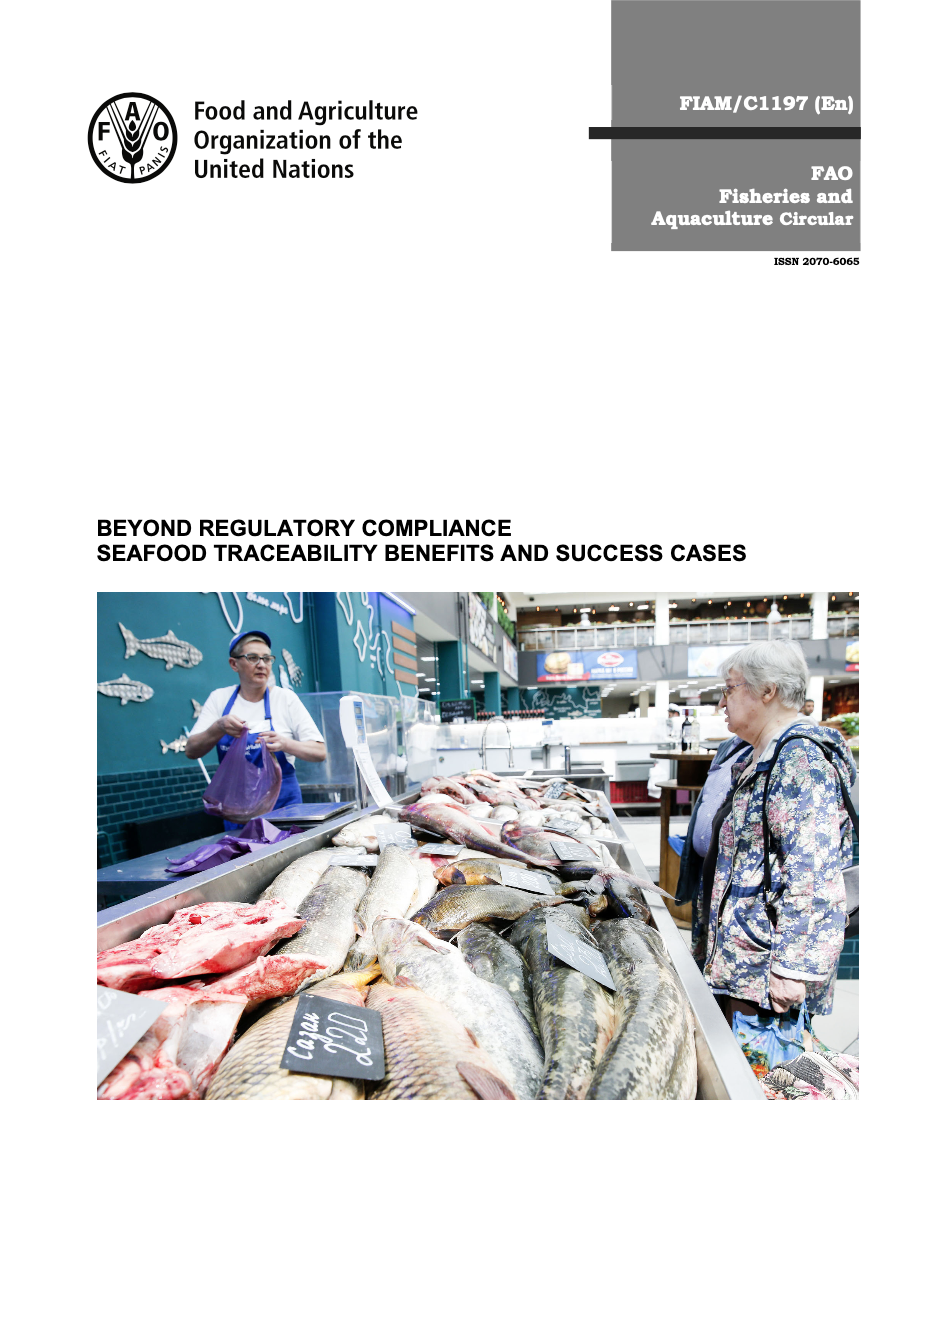 Beyond Regulatory Compliance: Seafood Traceability Benefits and Success Cases